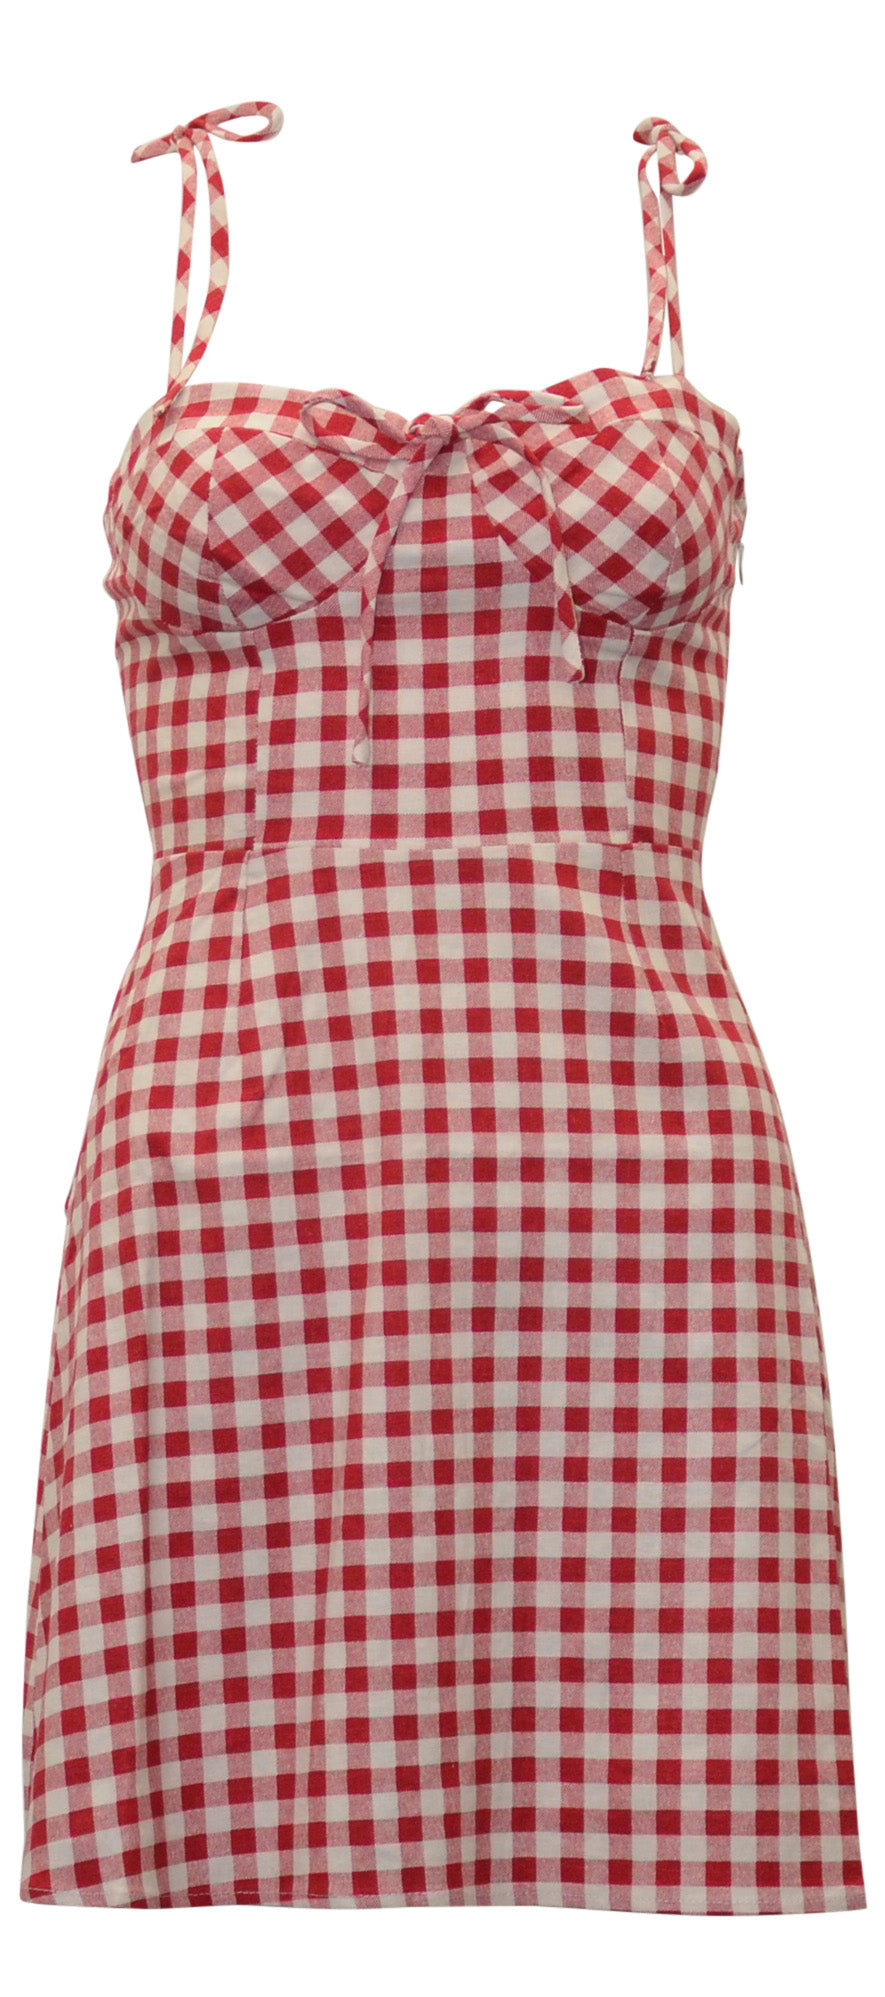 Wayf Red Gingham Dress